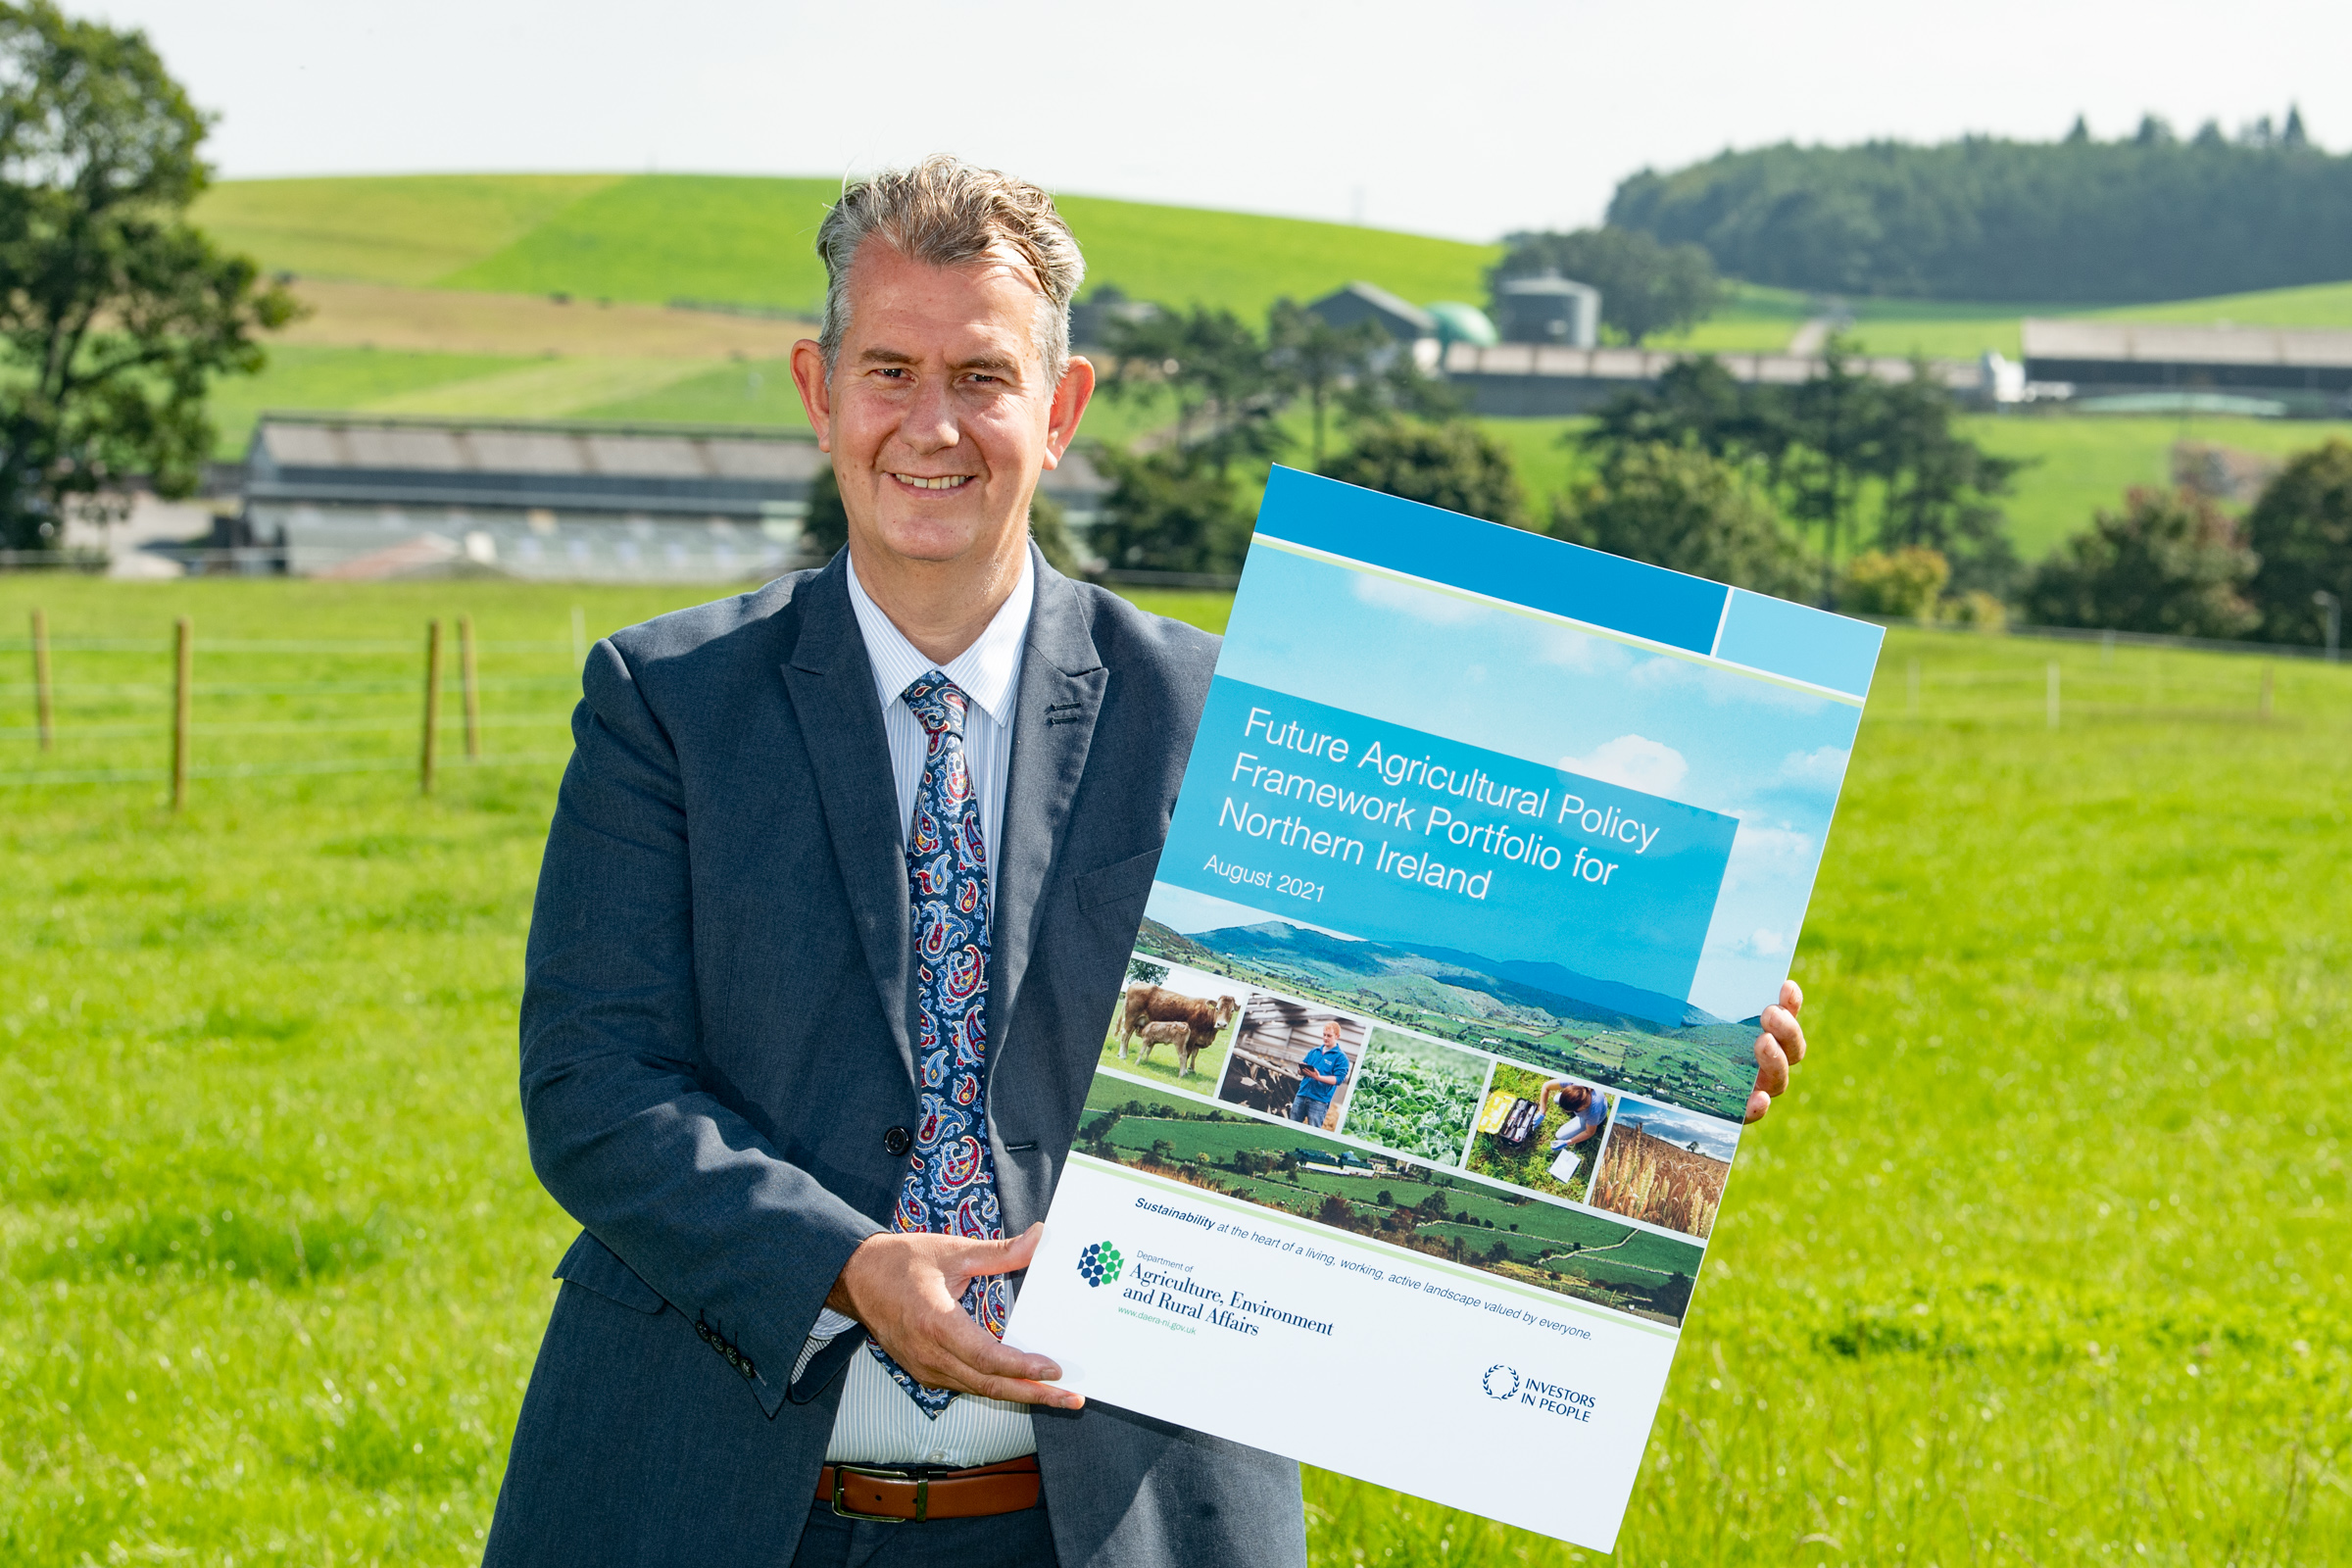 Poots publishes vision for future farming policy in NI - Newry Times - local news newry